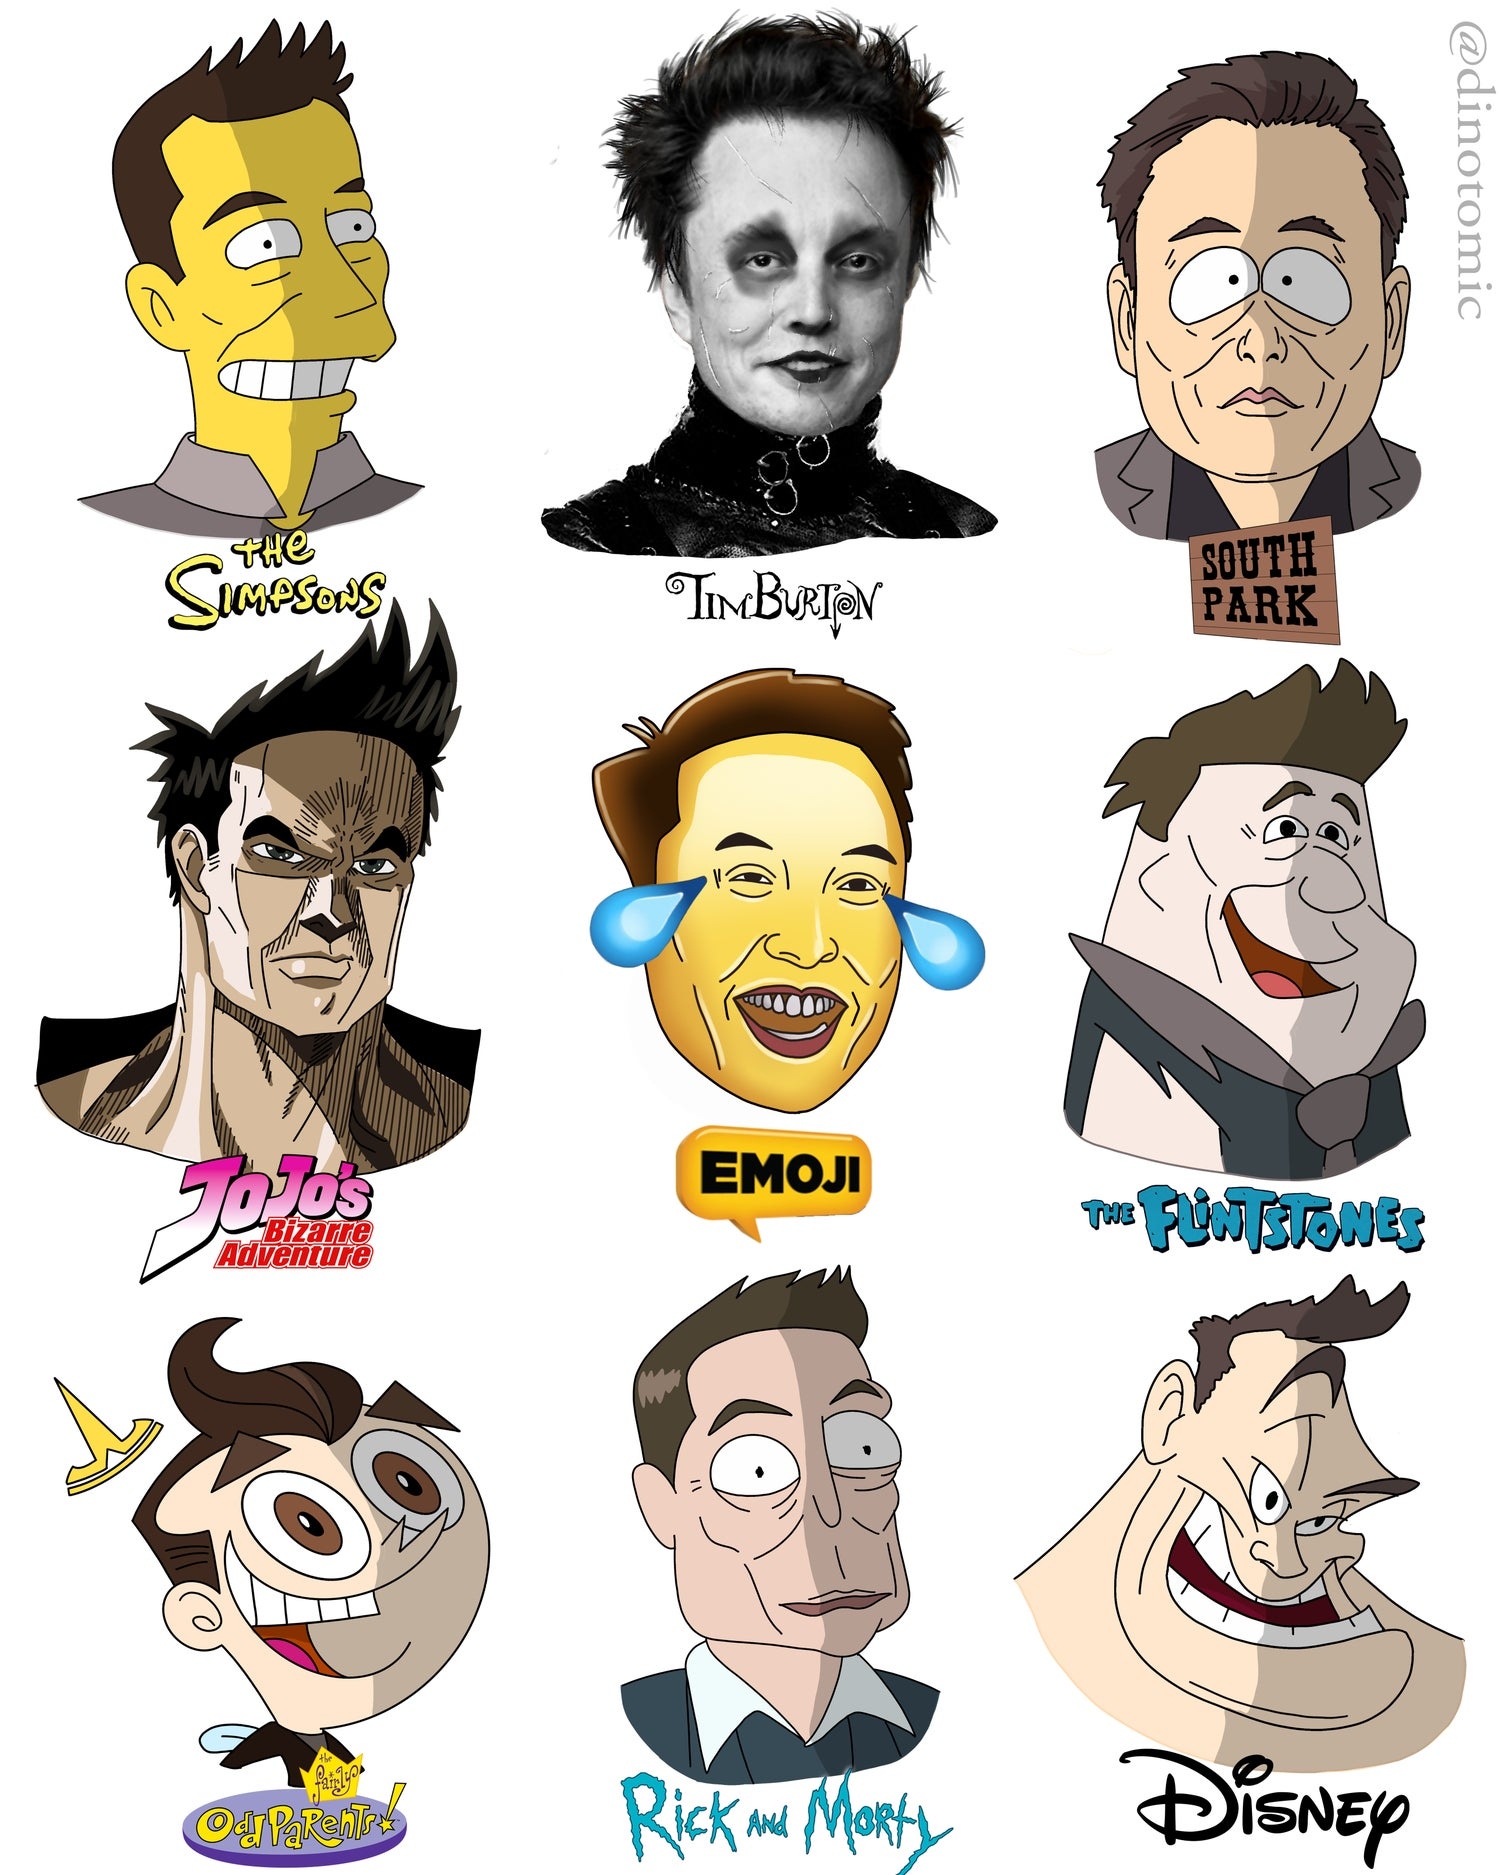 Image of #179 Elon Musk different styles